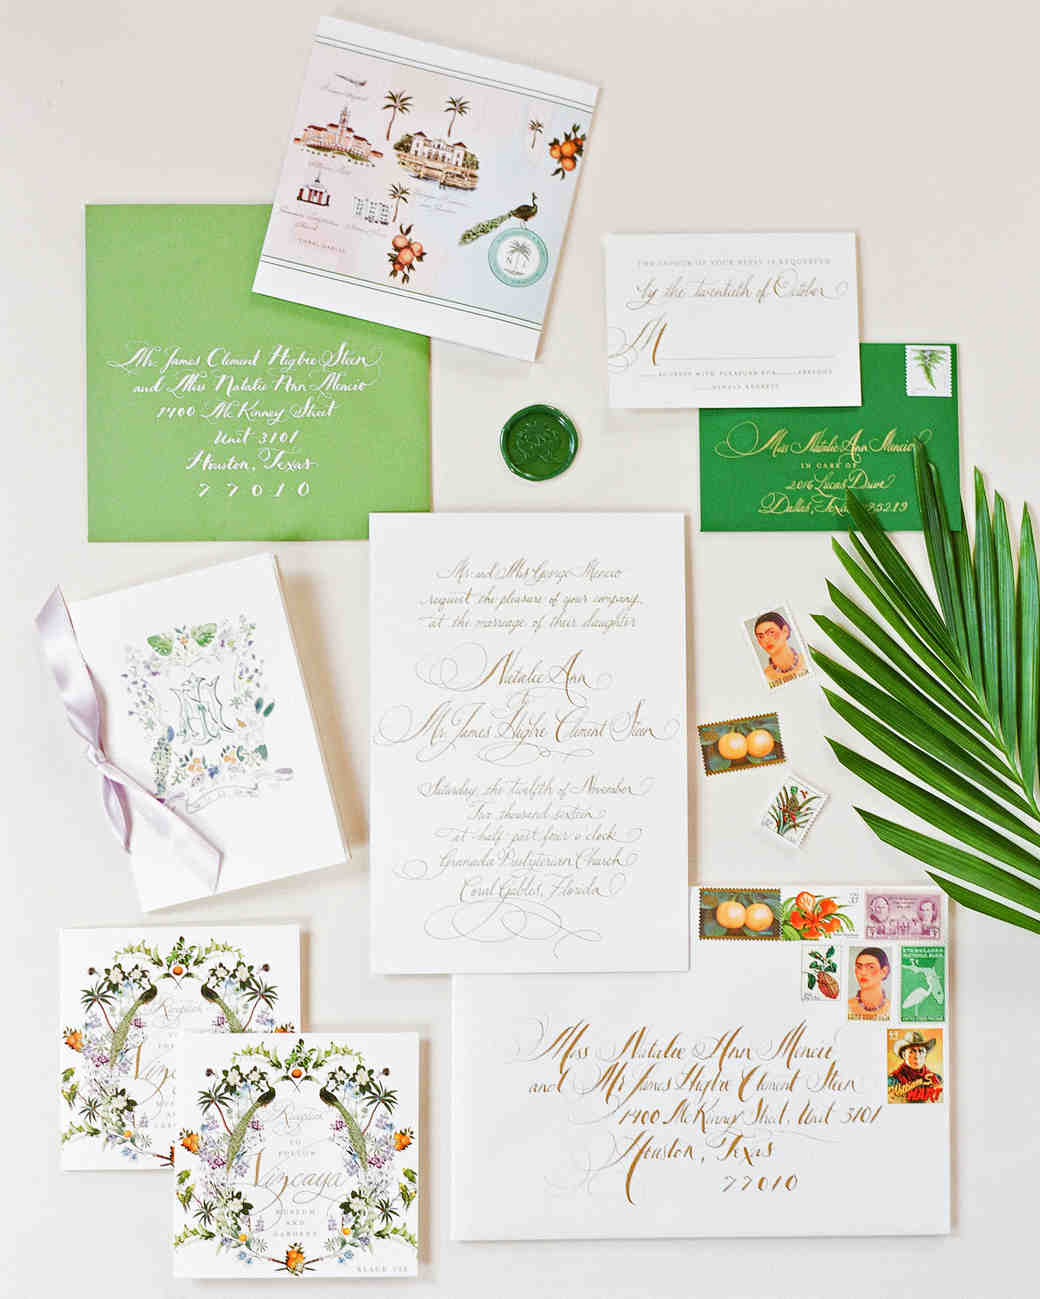 natalie jamey wedding stationery